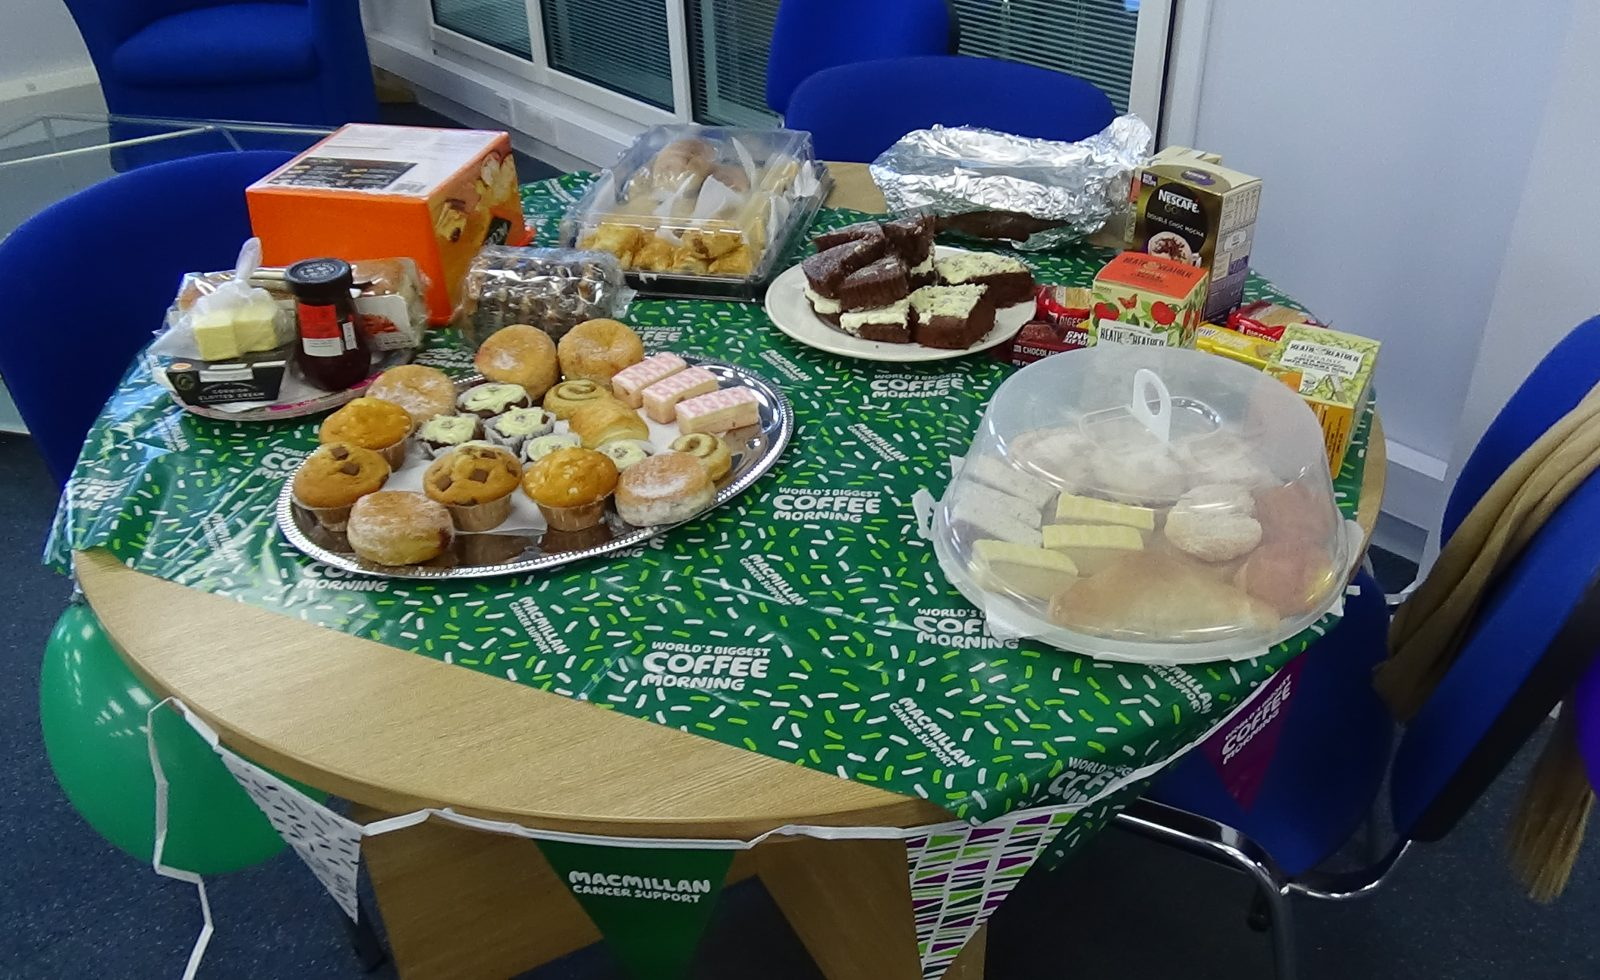 Macmillan Coffee Morning total